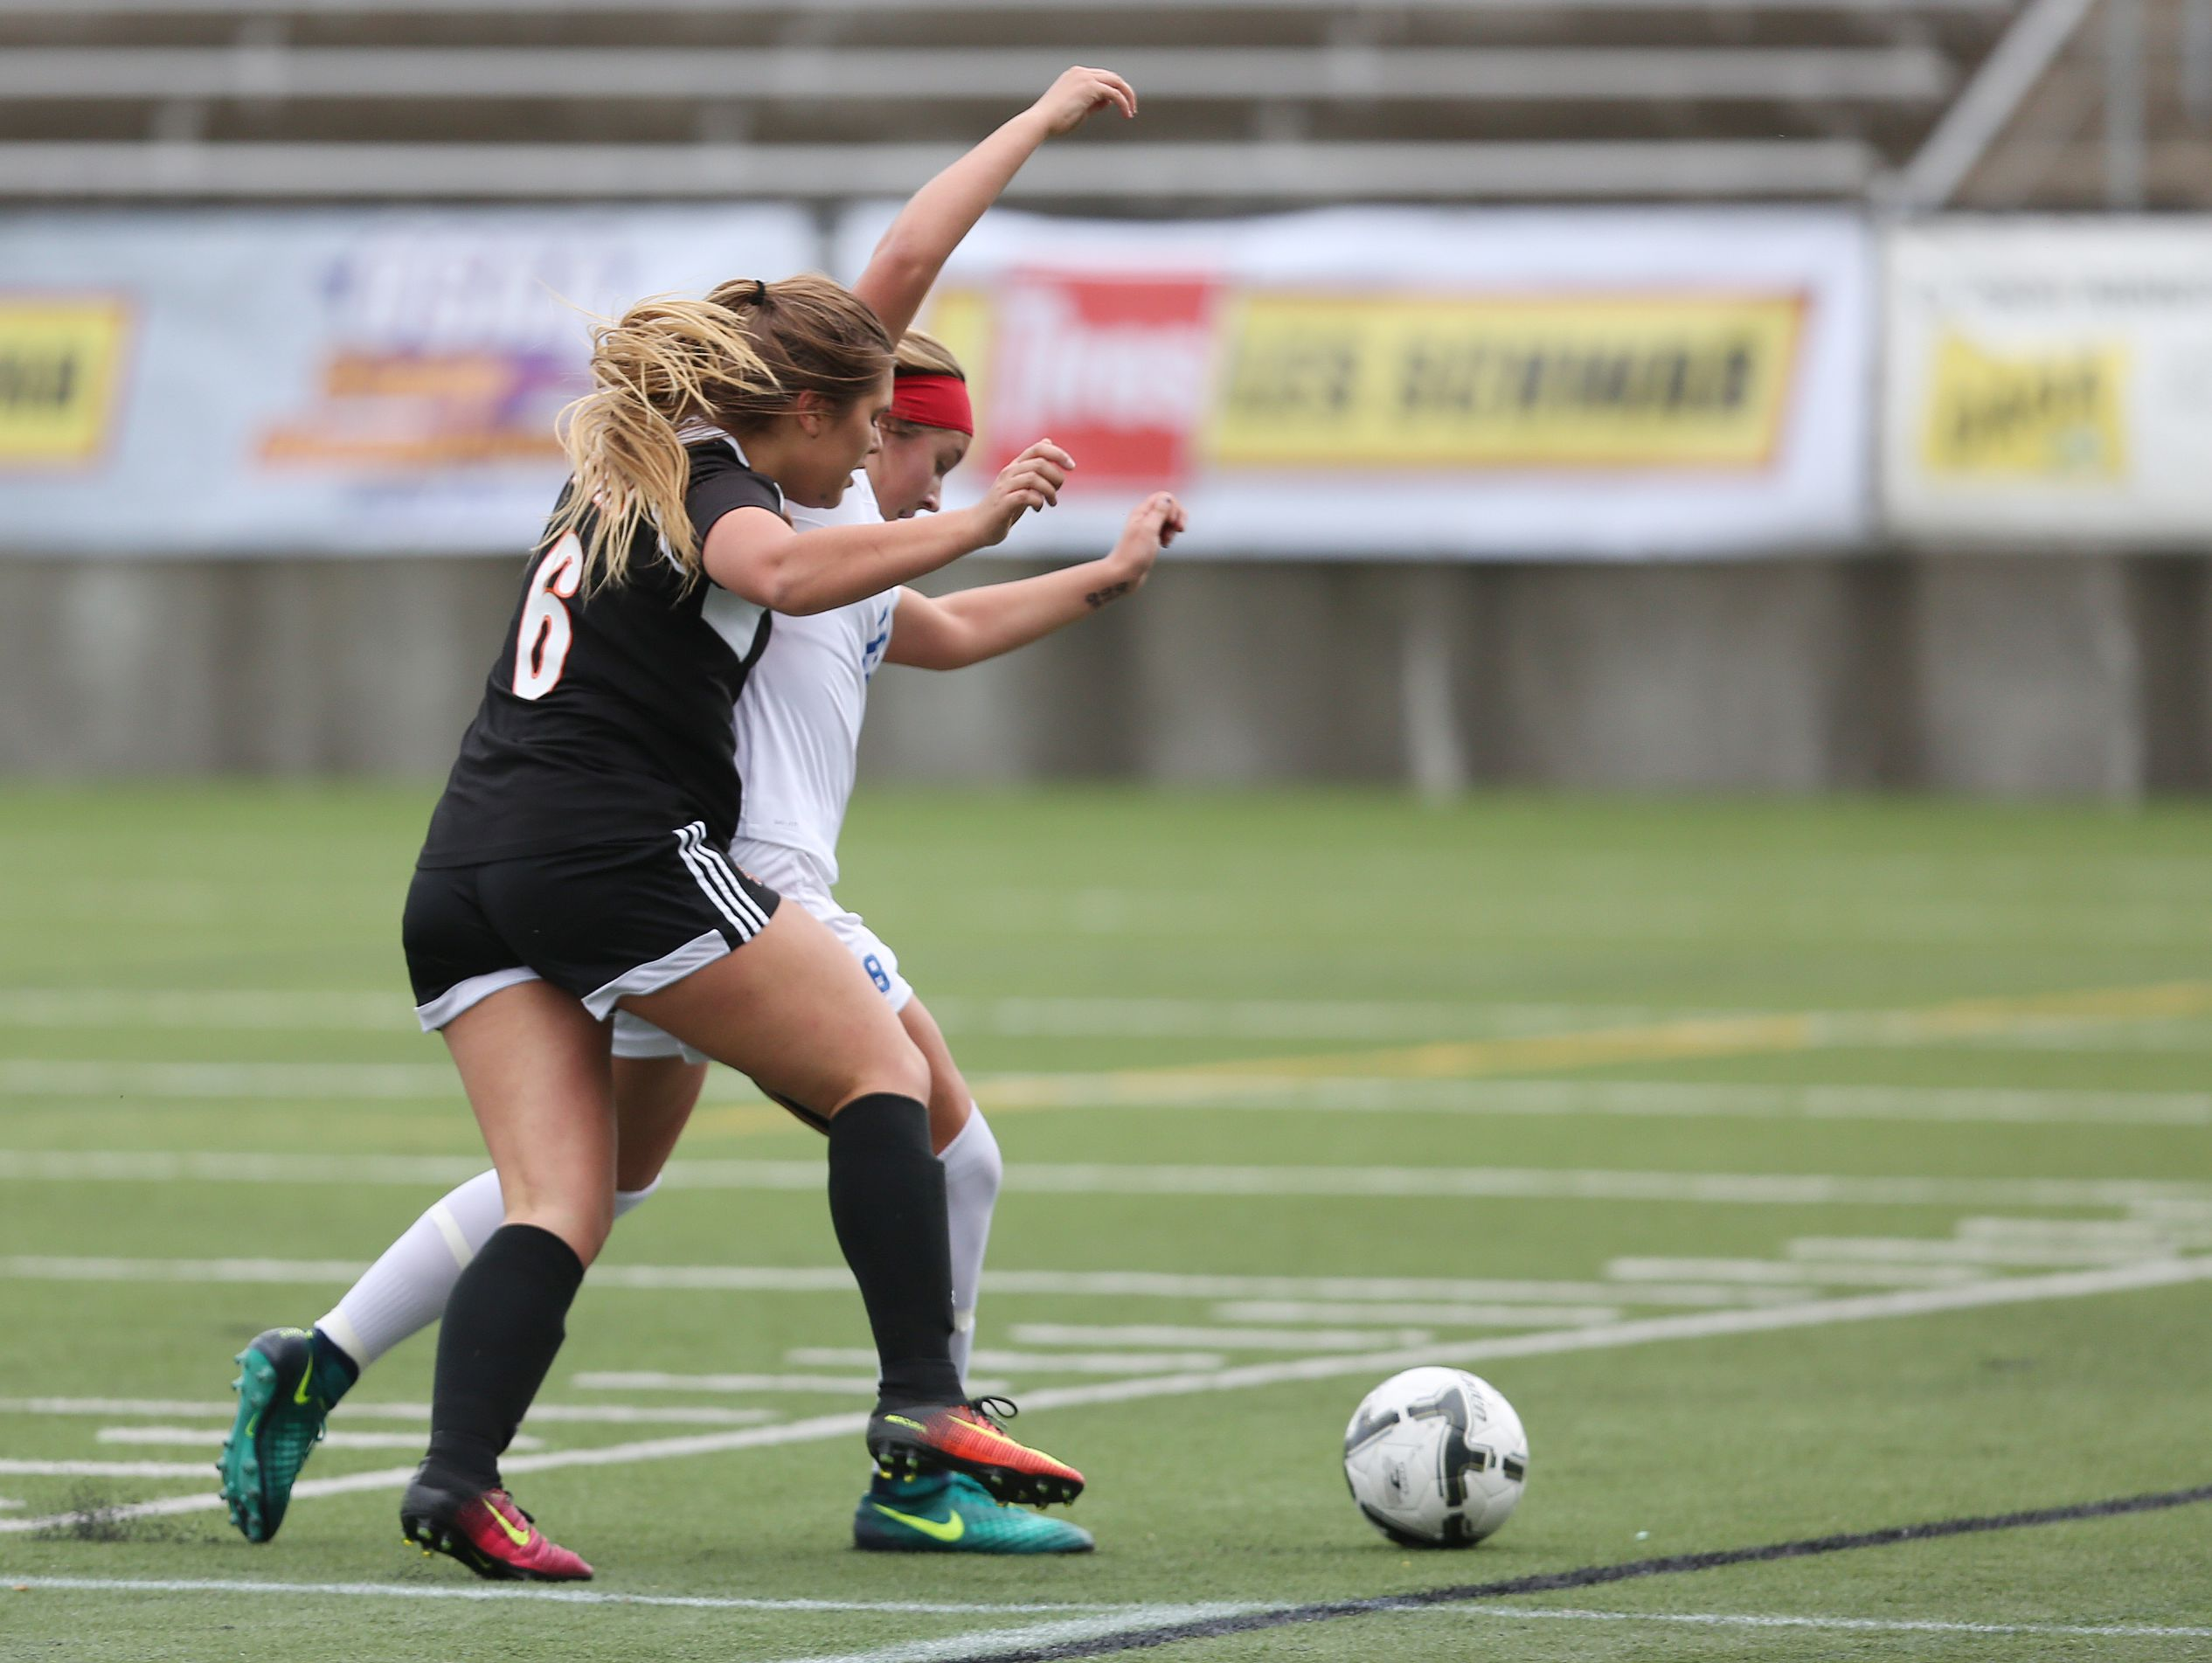 Silverton's Maddy Valoff and La Salle's Ellie Gentry battle for the ball as the Foxes fall to La Salle 3-2 in overtime during the OSAA Class 5A State Championship game on Saturday, Nov. 12, 2016, at Hillsboro Stadium.